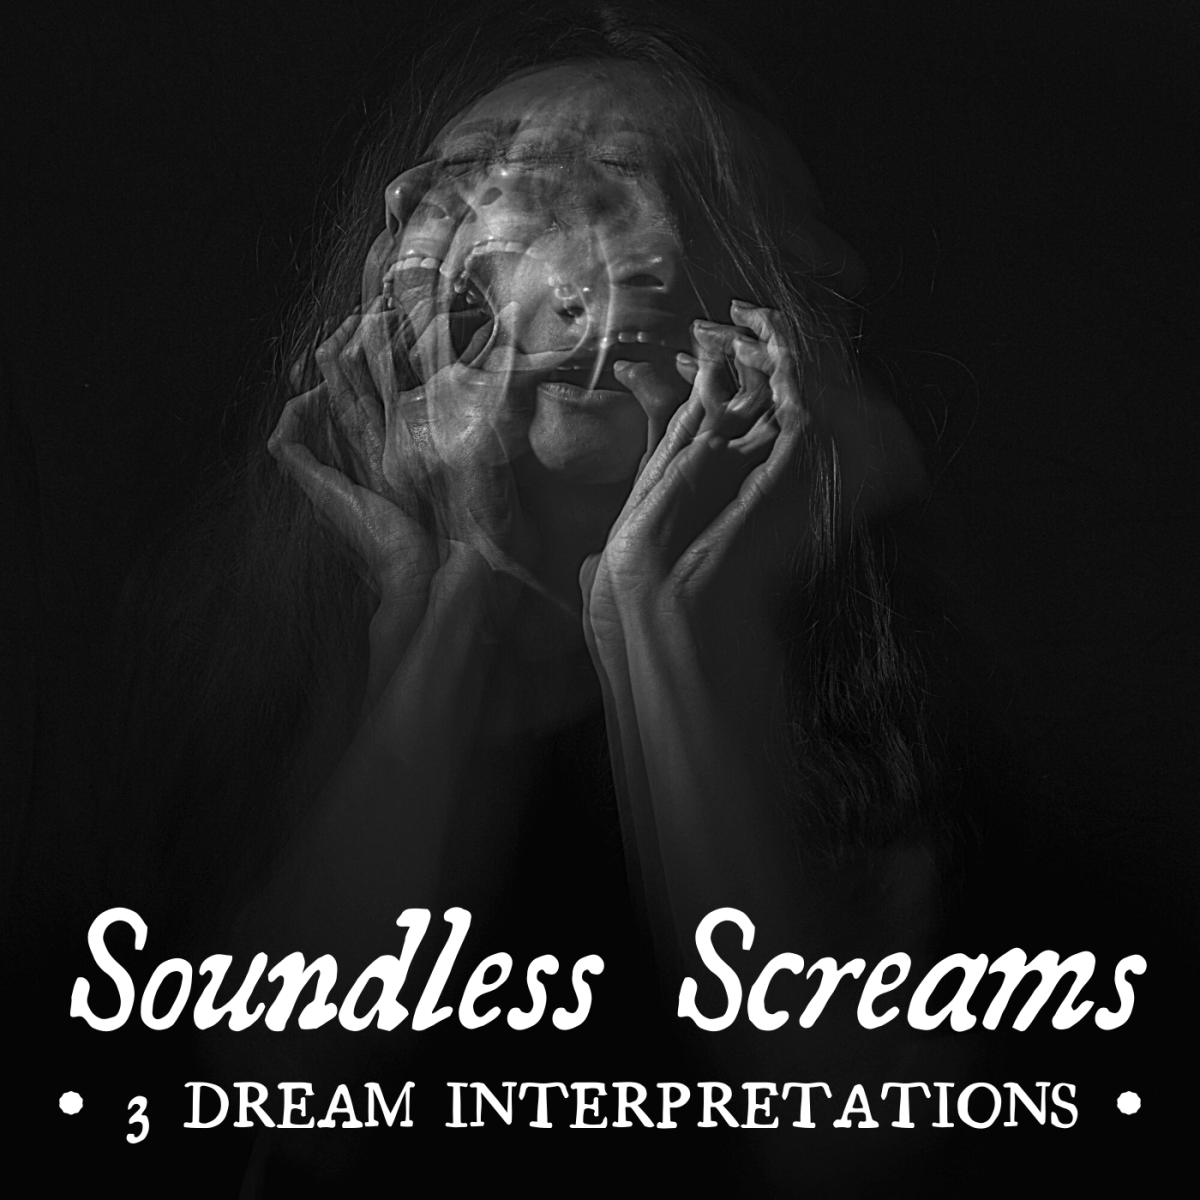 What Soundless Screaming in Your Dream Means: Top 3 Interpretations